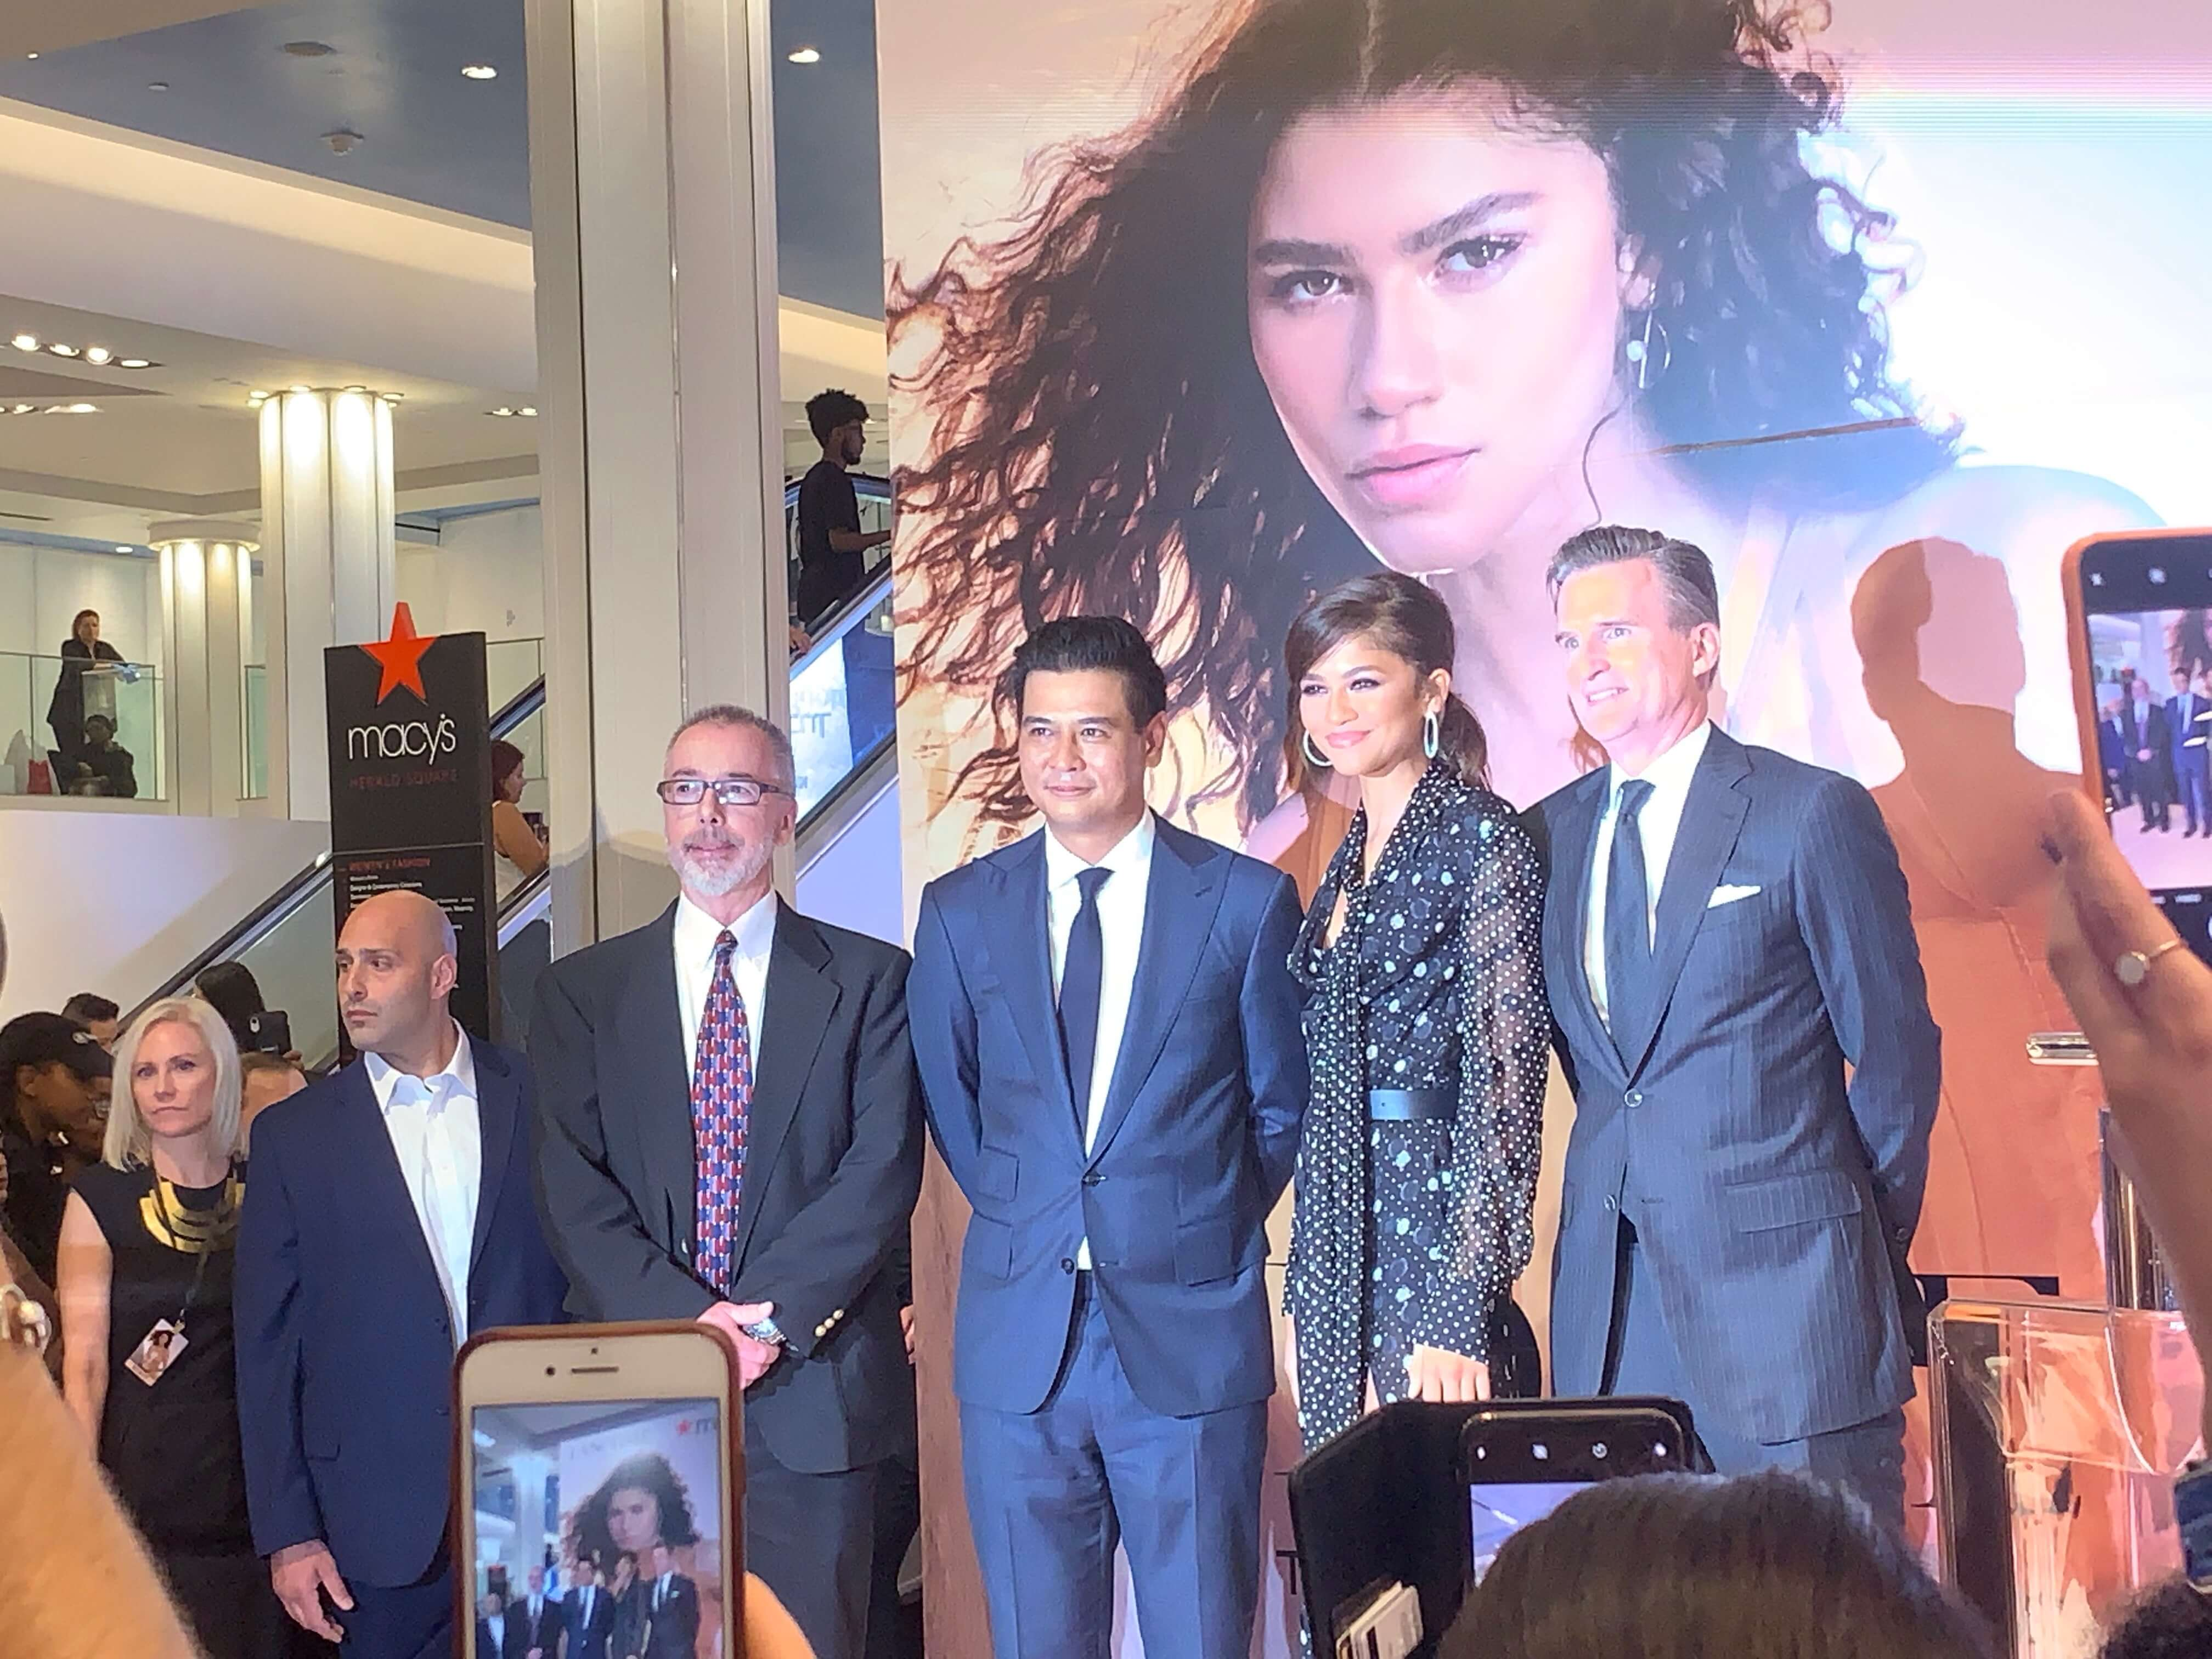 Zendaya with members of the ProLiteracy and Macy's team